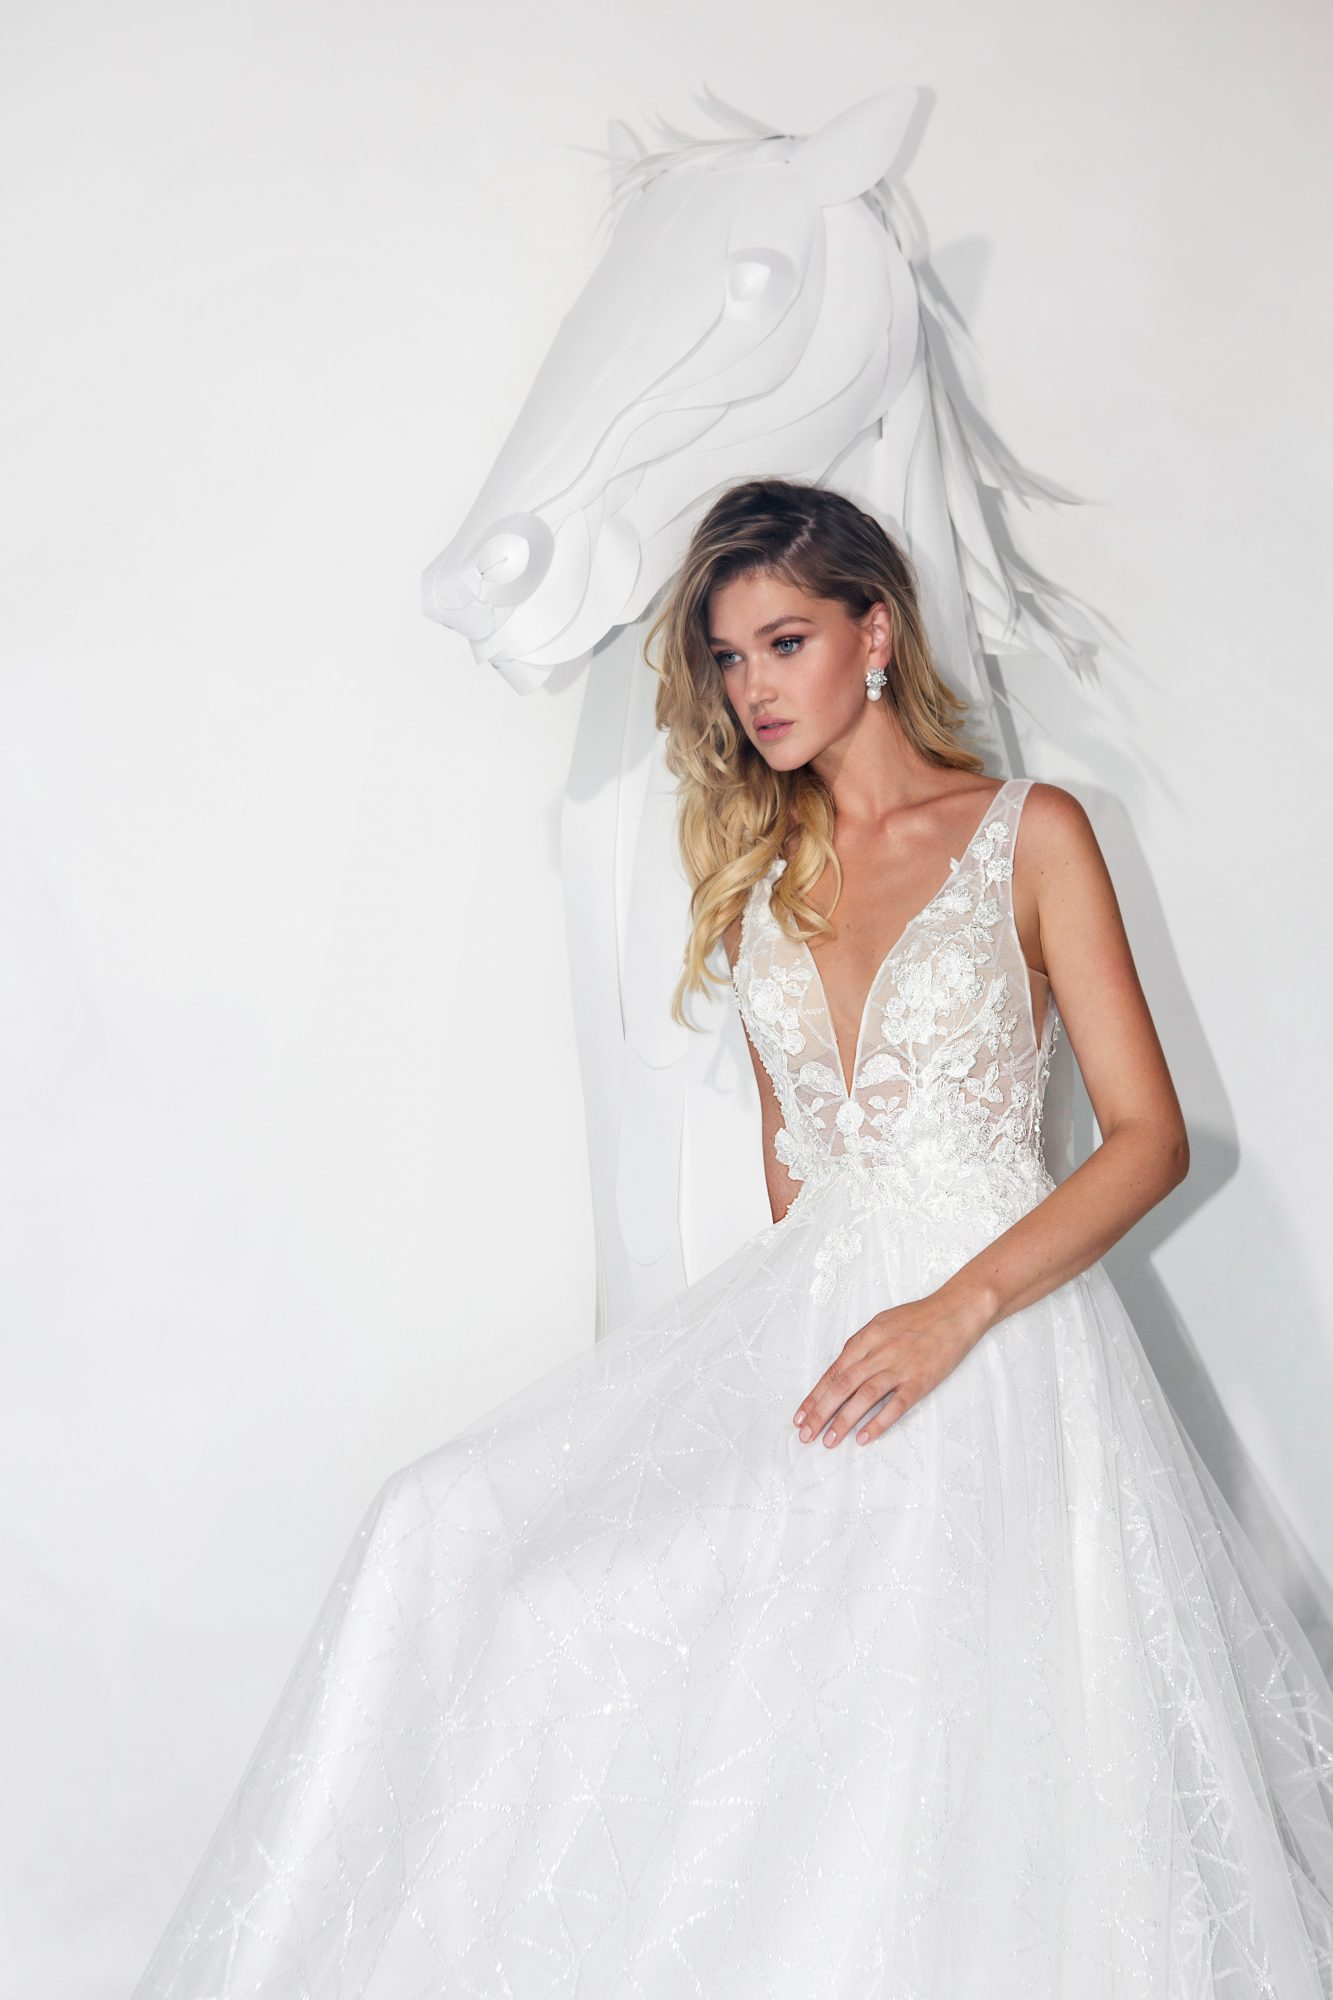 lavish by yaniv persy wedding dress spring 2019 deep v sleeveless a-line